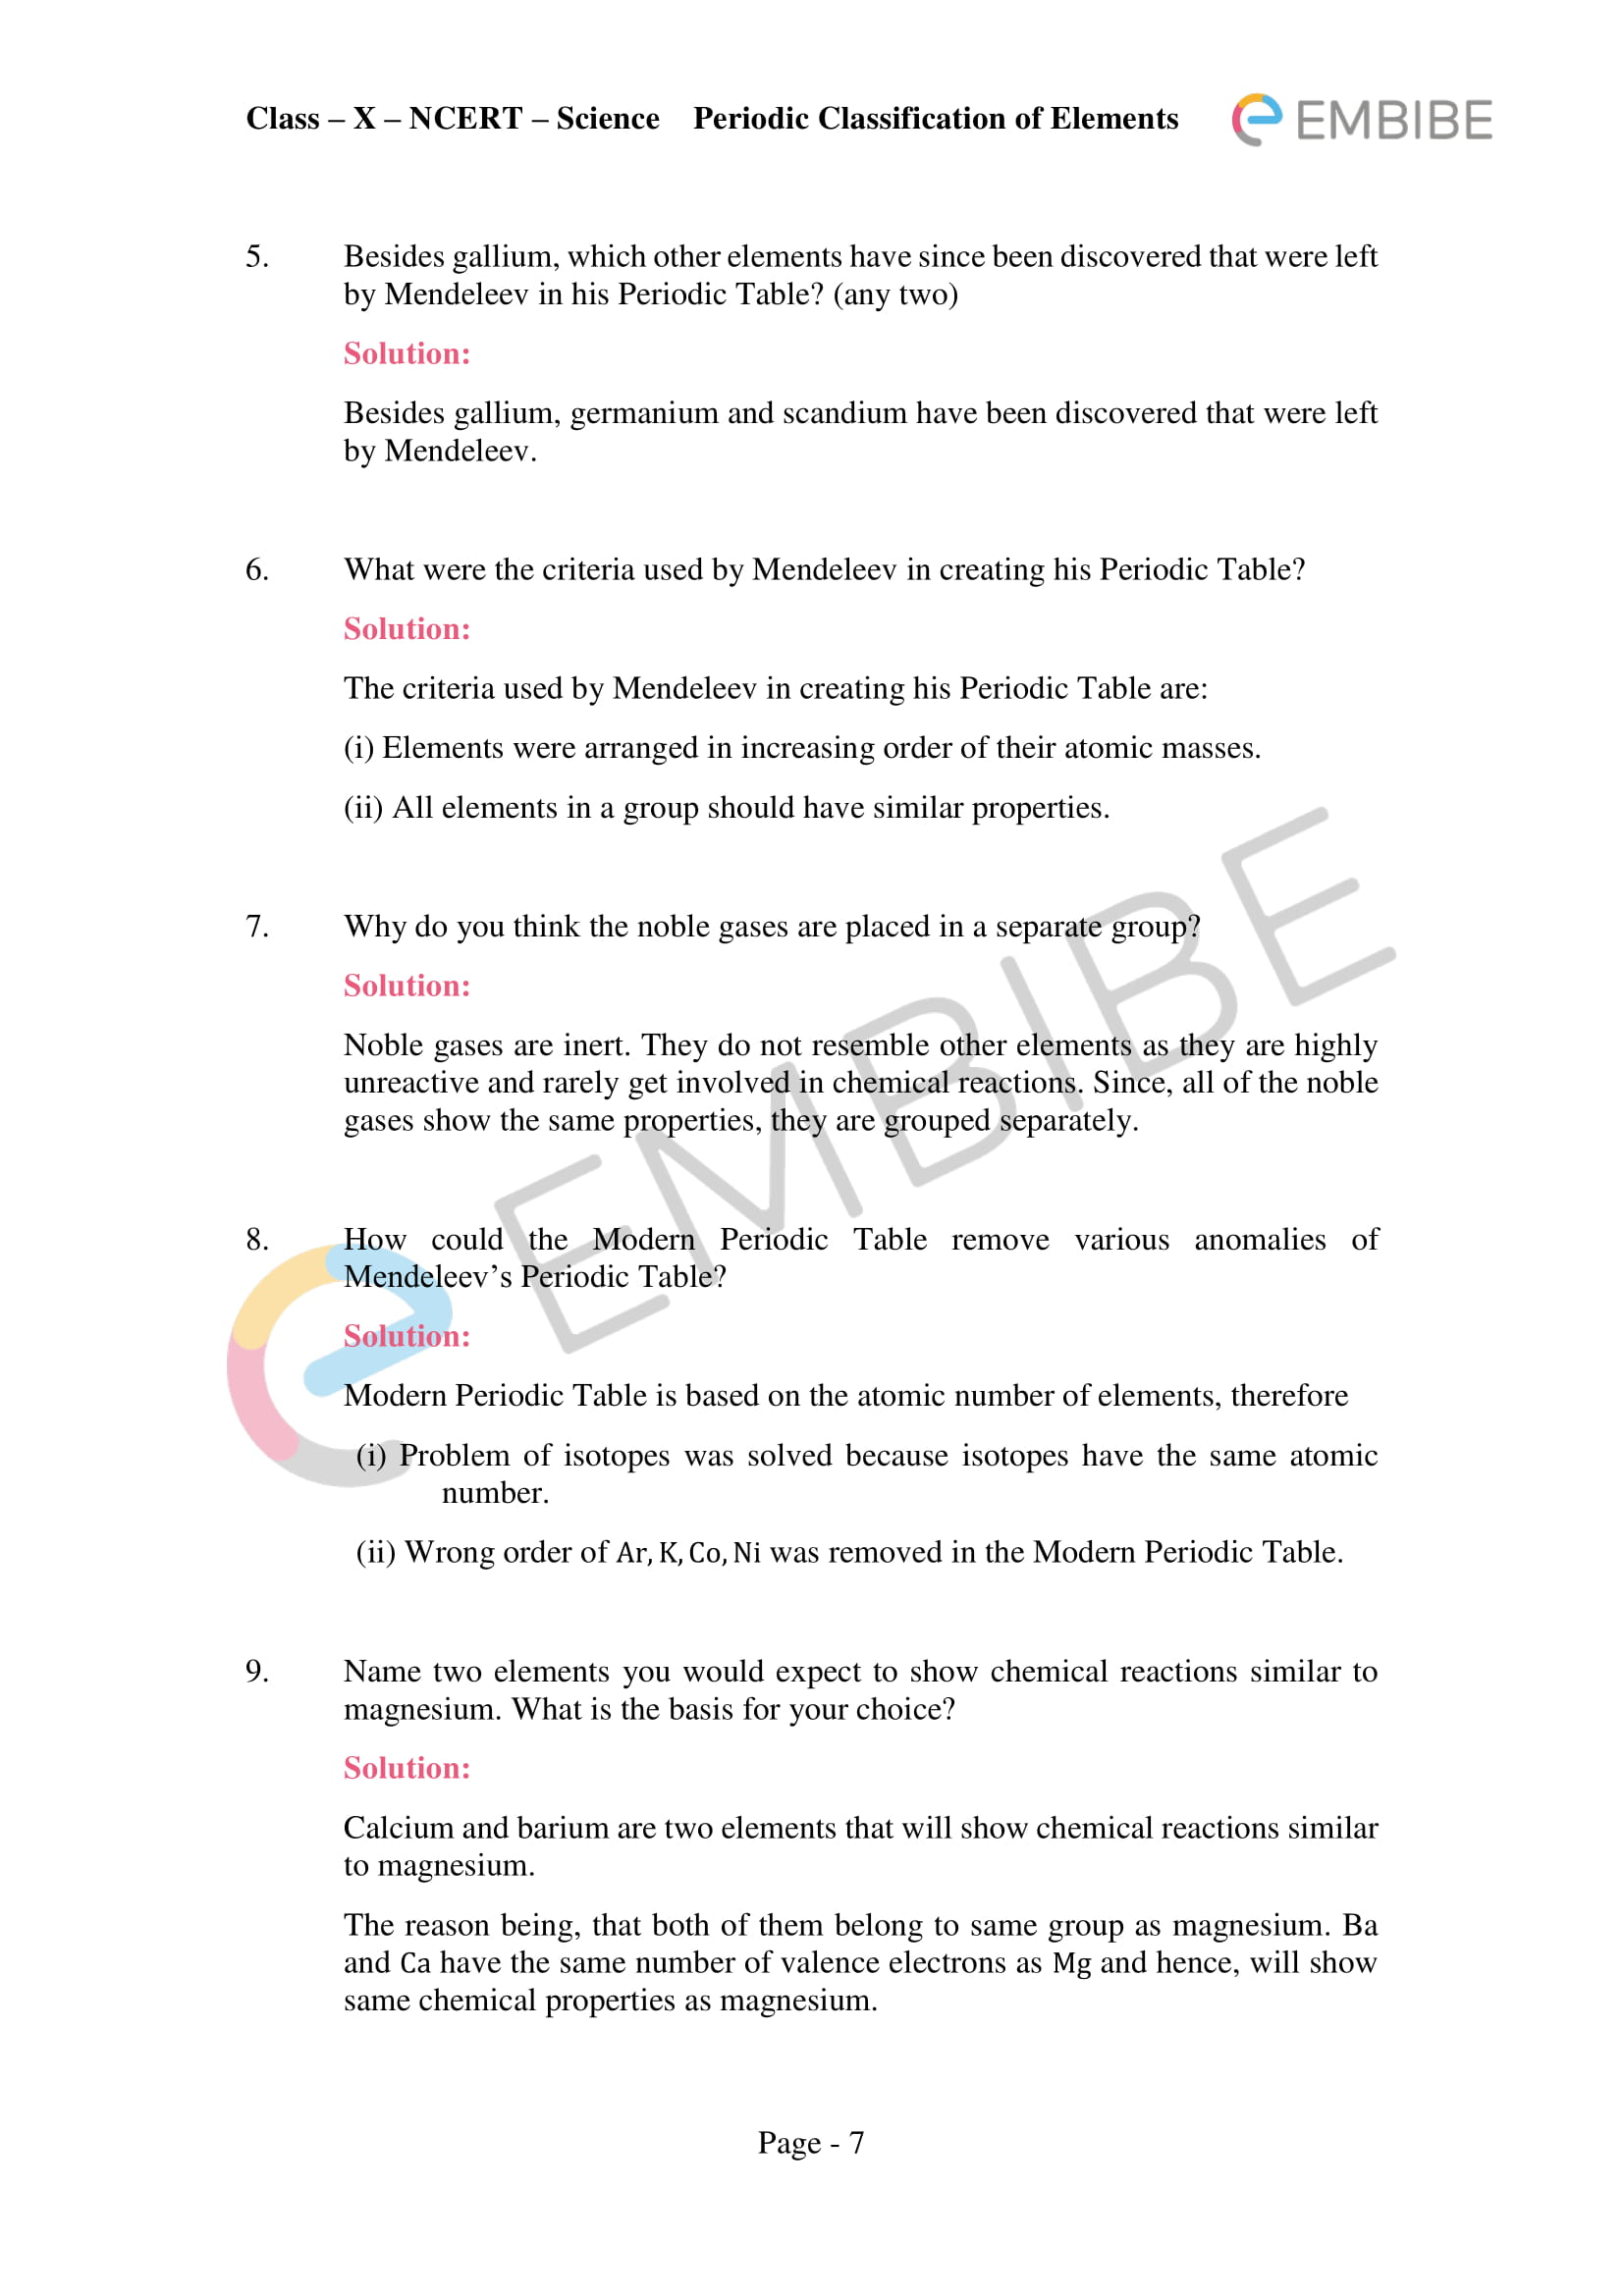 ncert solutions for class 10 science chapter 5 -periodic classification of elements